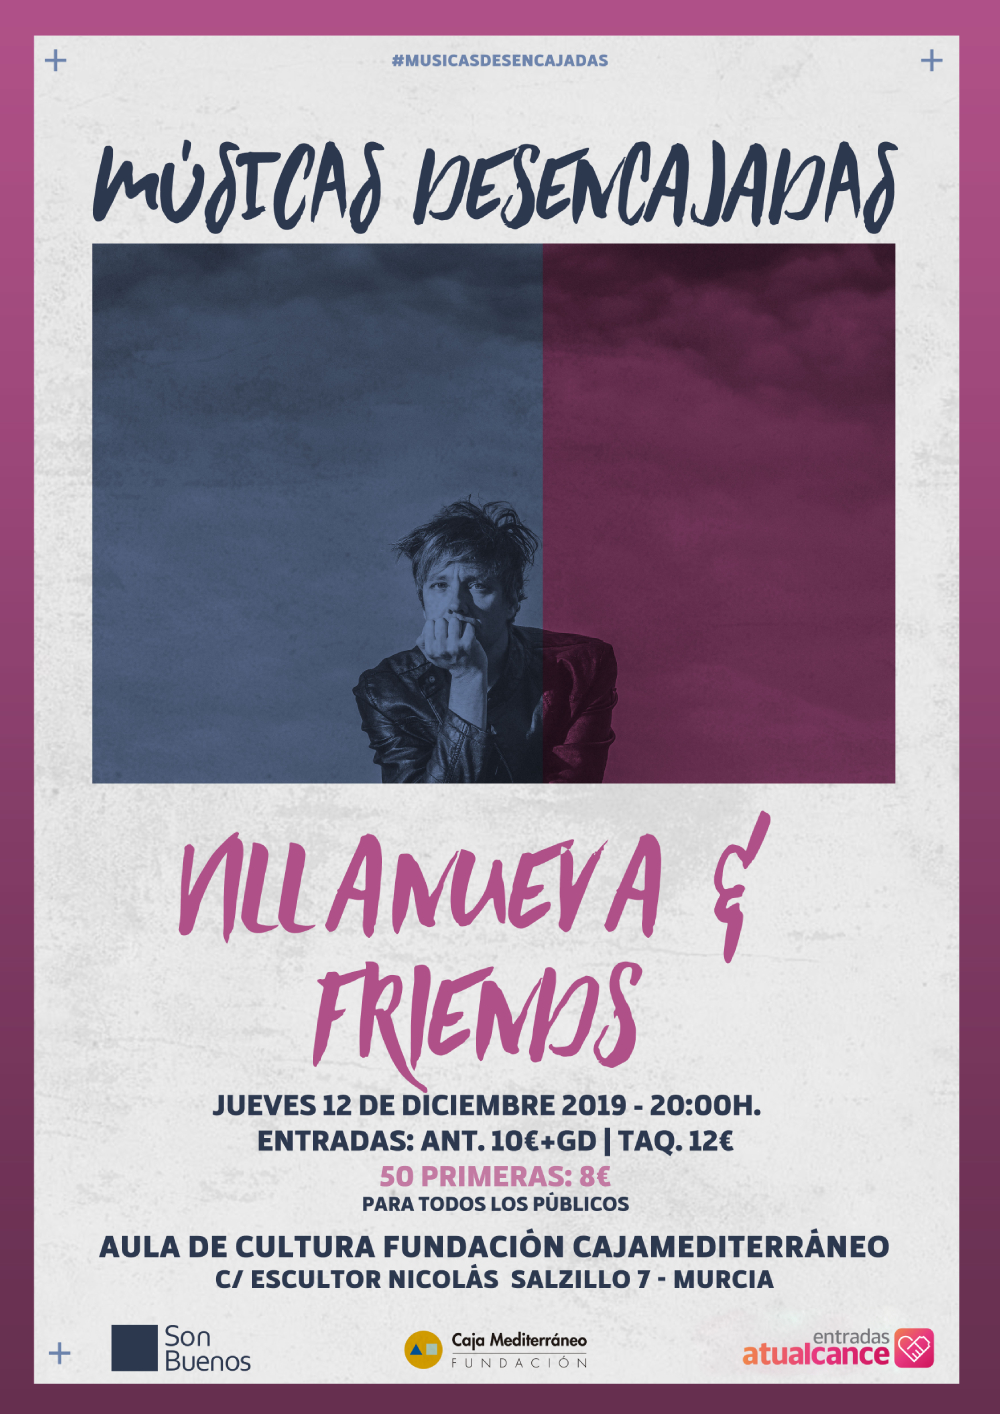 villanueva-and-friends-en-musicas-desenc